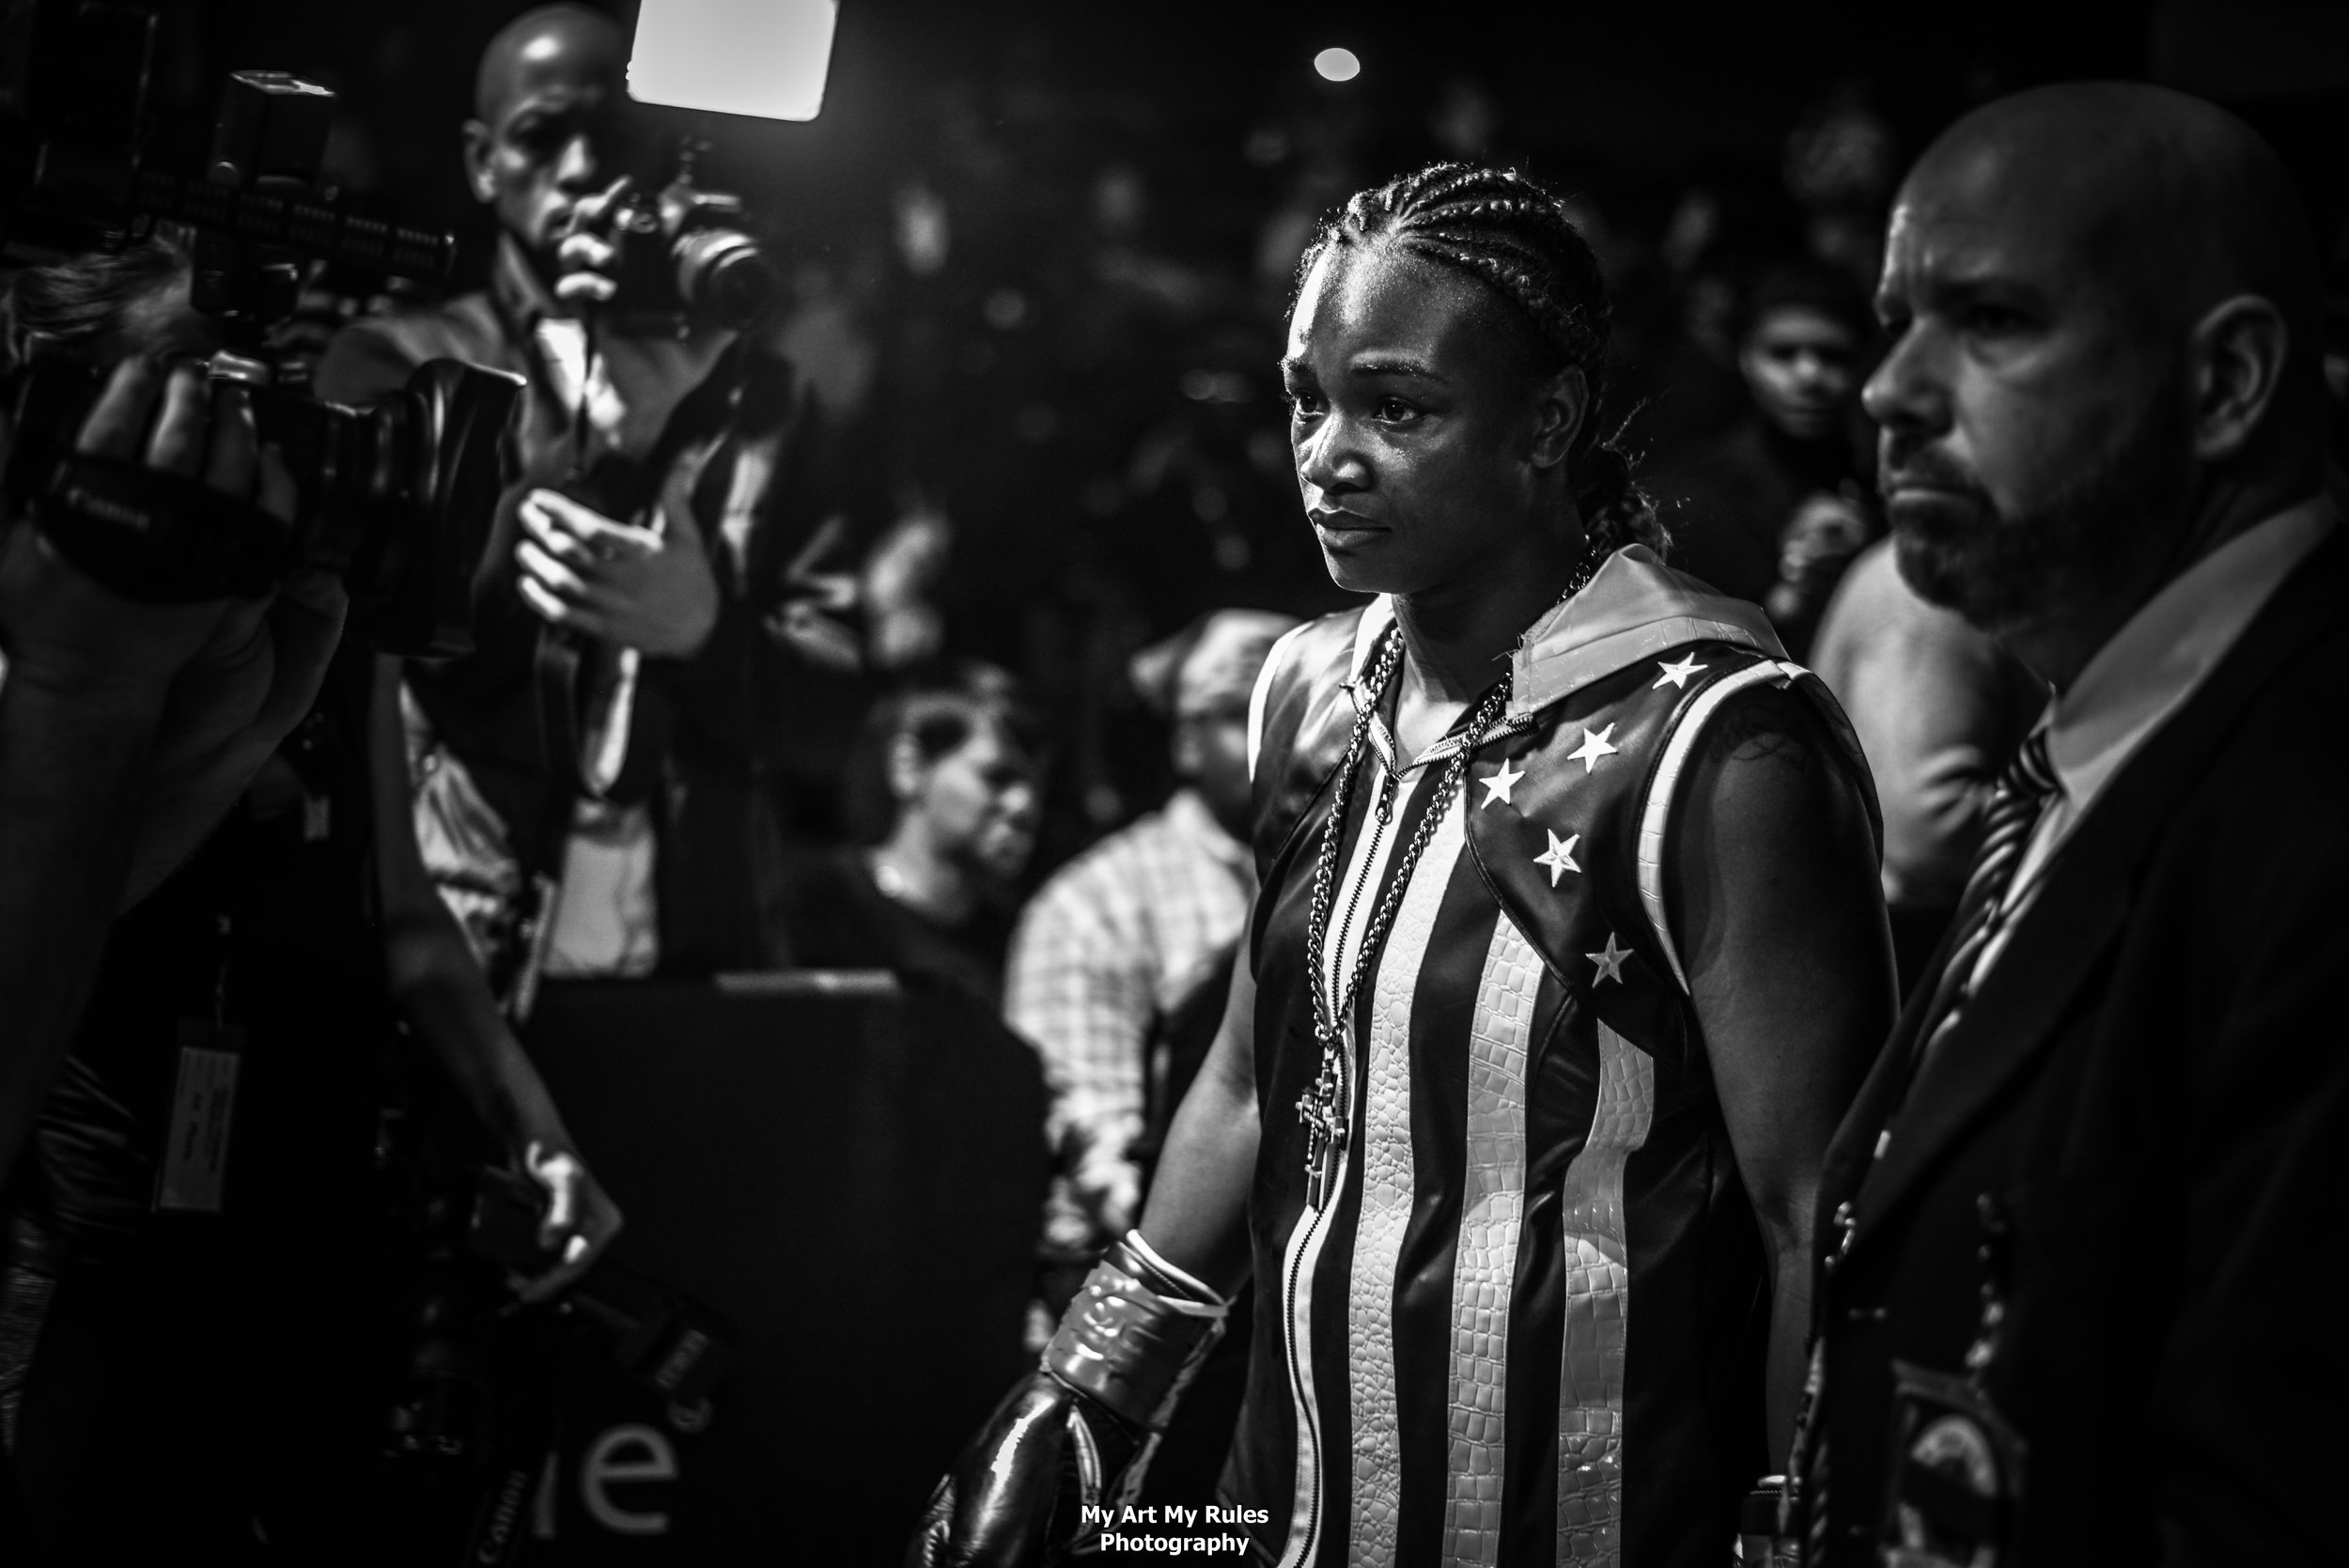 Women In Boxing: Against All Odds